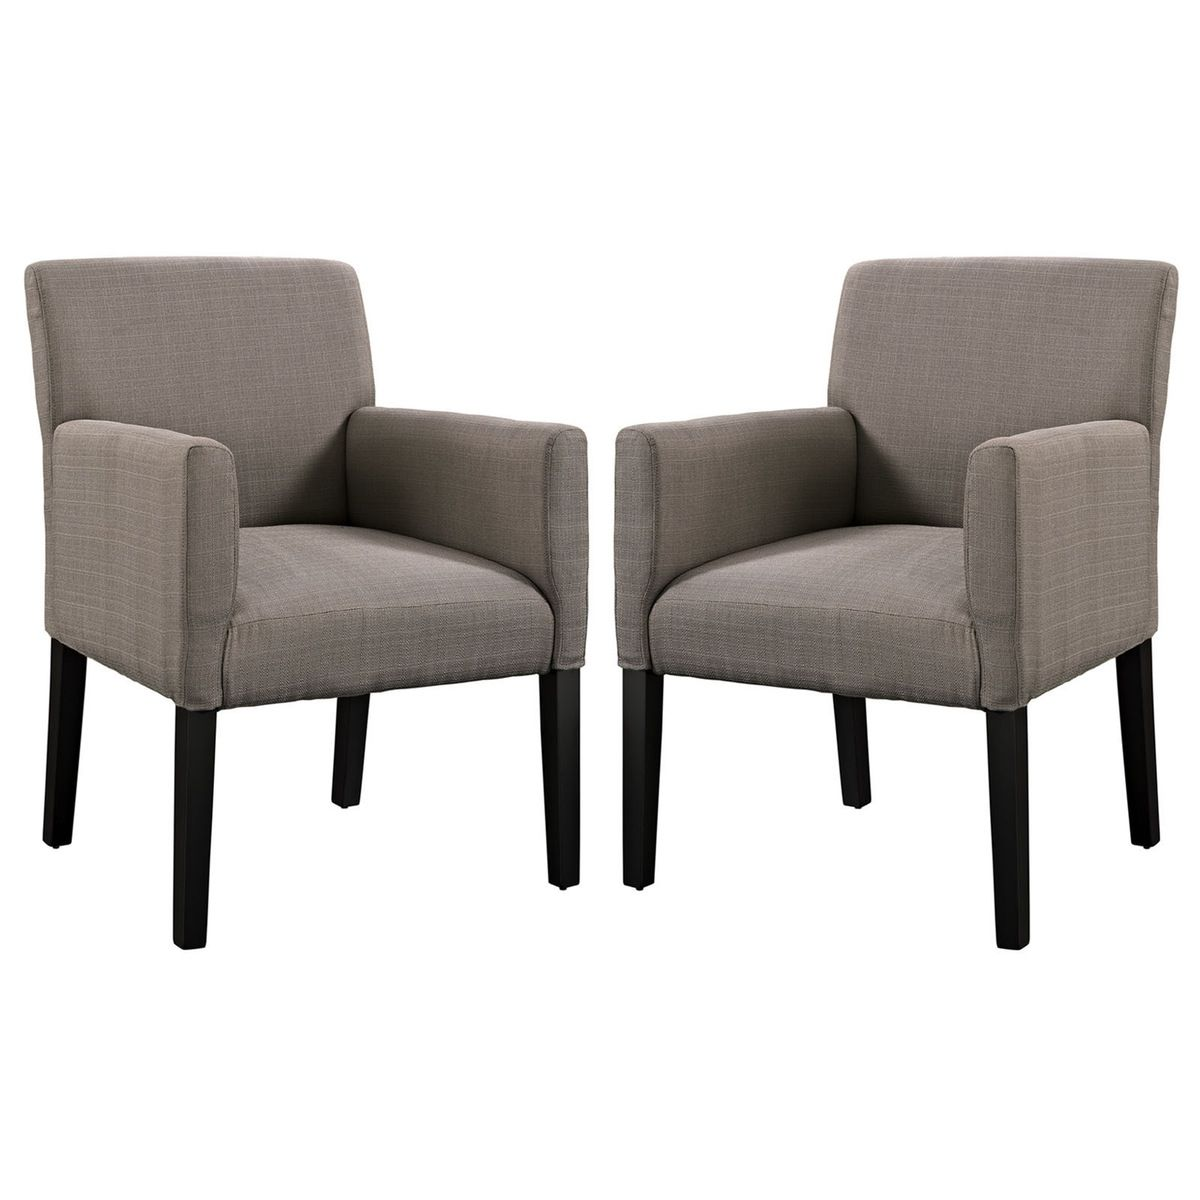 Modway Chloe Armchair Set Of 2